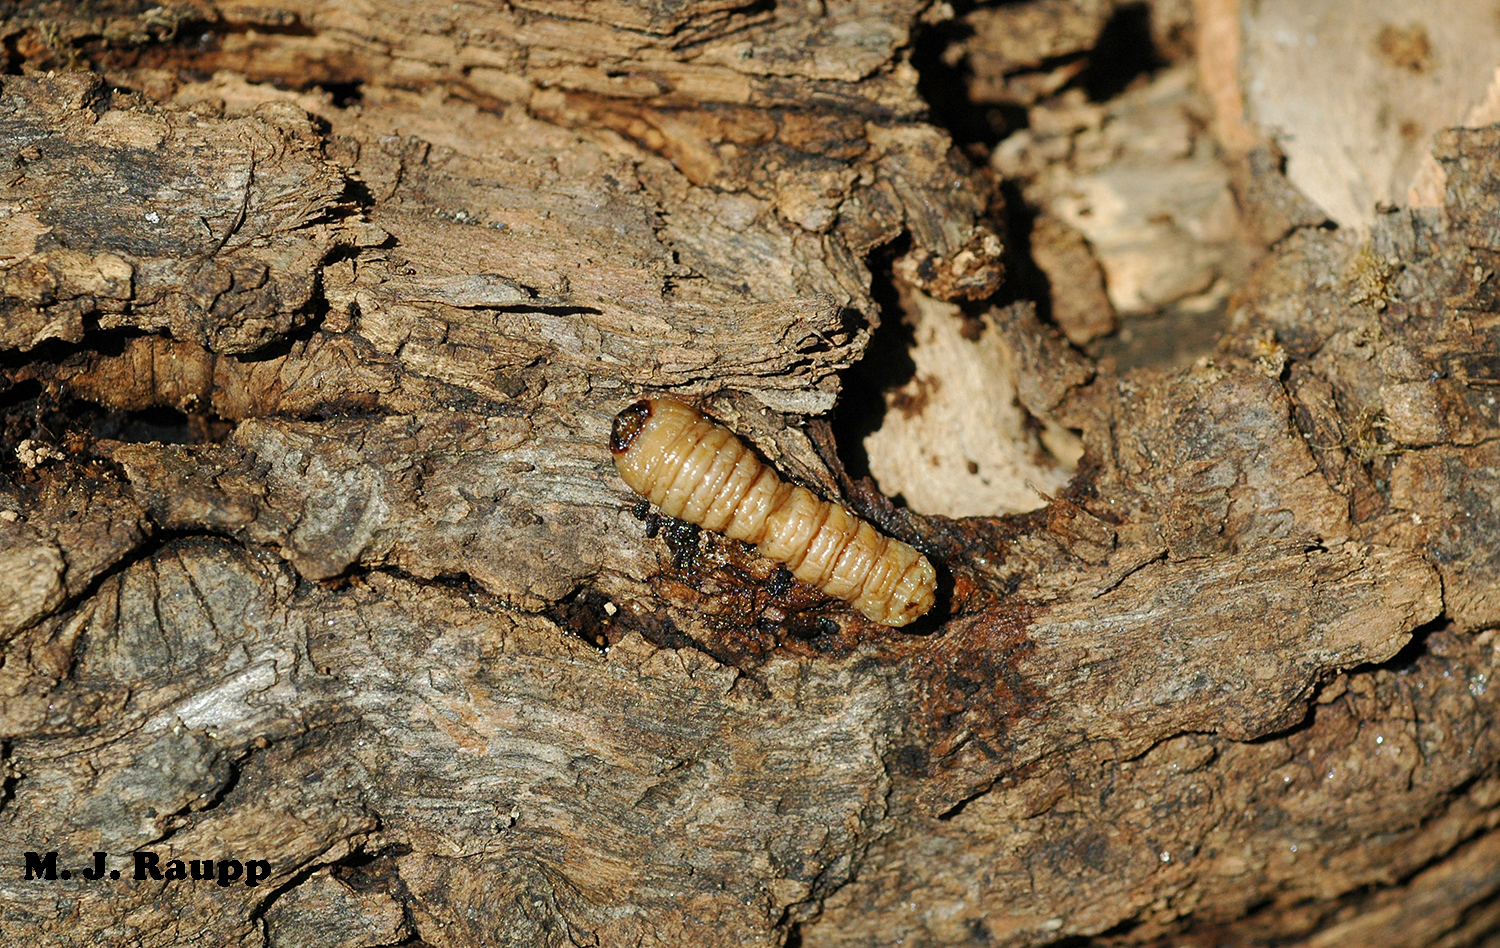 Larvae of the locust borer are known as round headed borers. Their galleries structurally weaken trees and can kill branches and sometimes entire trees.